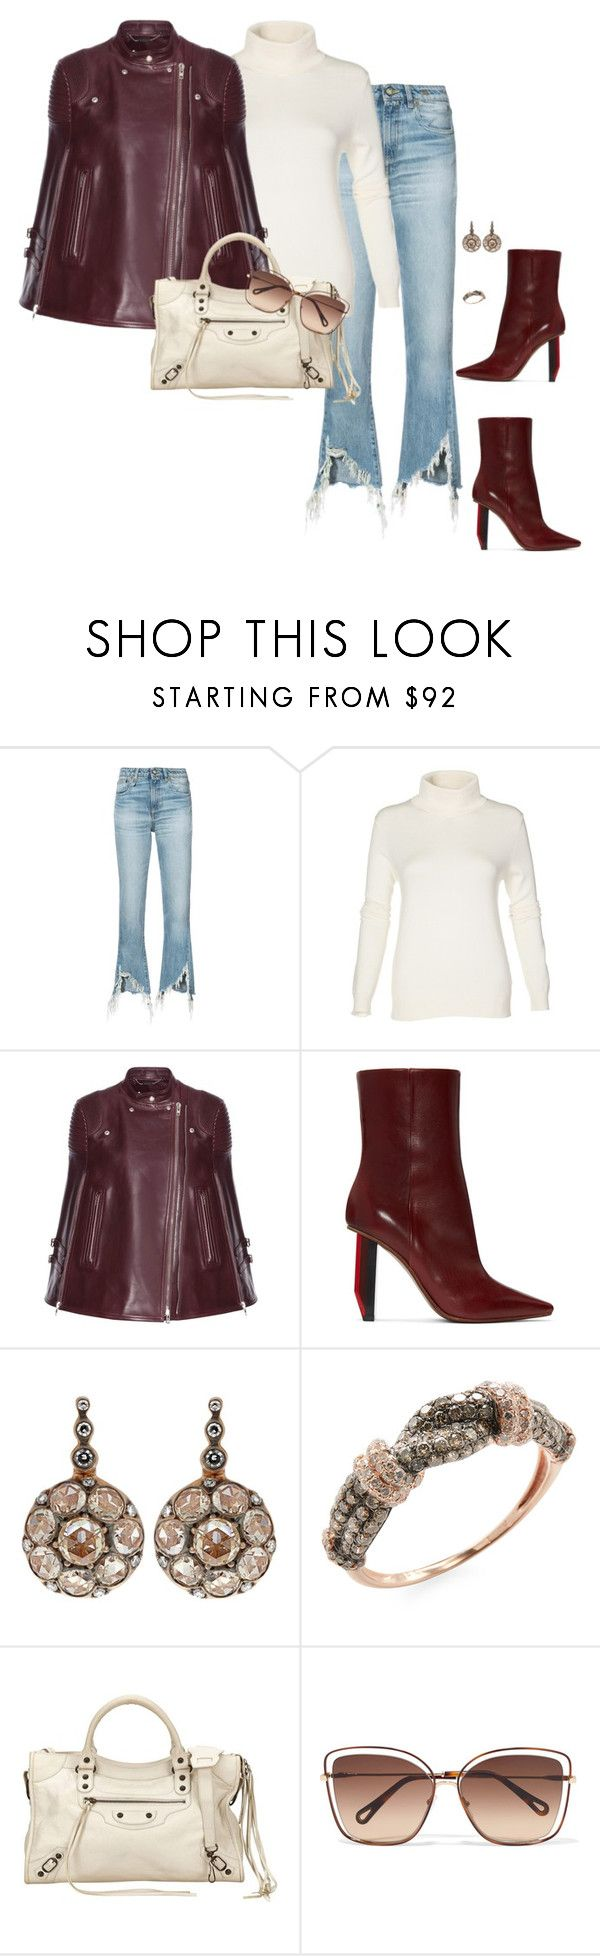 """""""Miller"""" by ccoss on Polyvore featuring R13, Givenchy, Vetements, Selim Mouzannar, Effy Jewelry, Balenciaga and Chloé"""